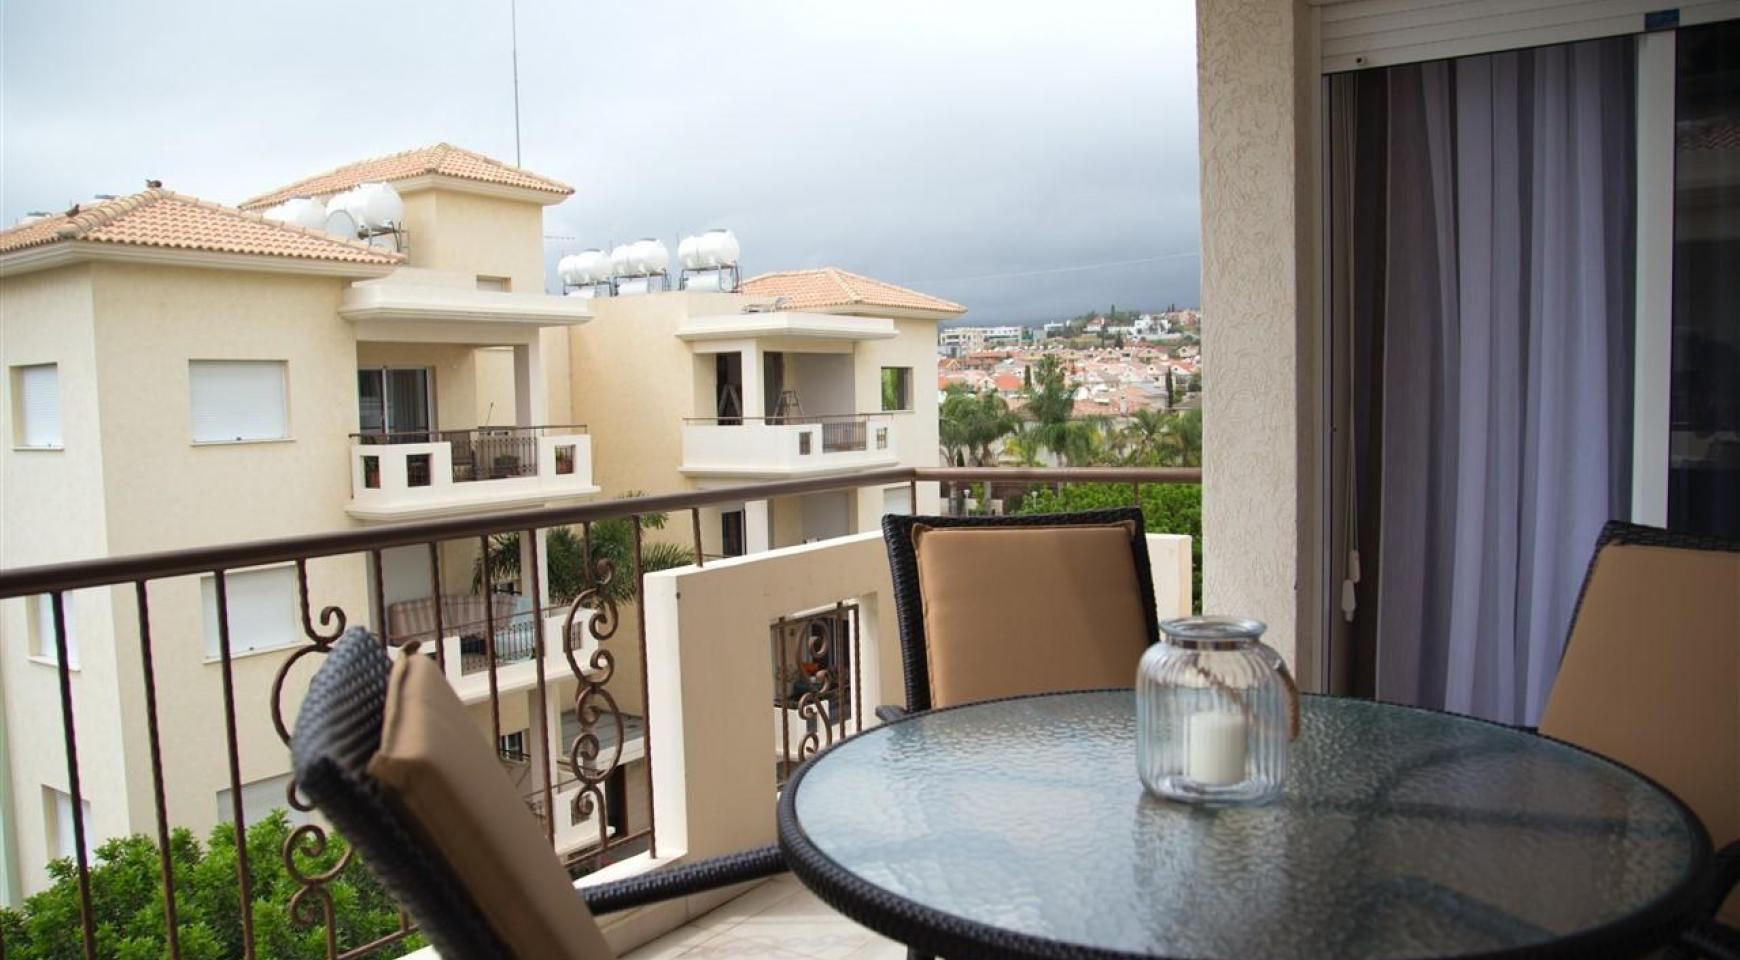 Luxury 2 Bedroom Apartment Mesogios Iris 304 in the Tourist area near the Beach - 24